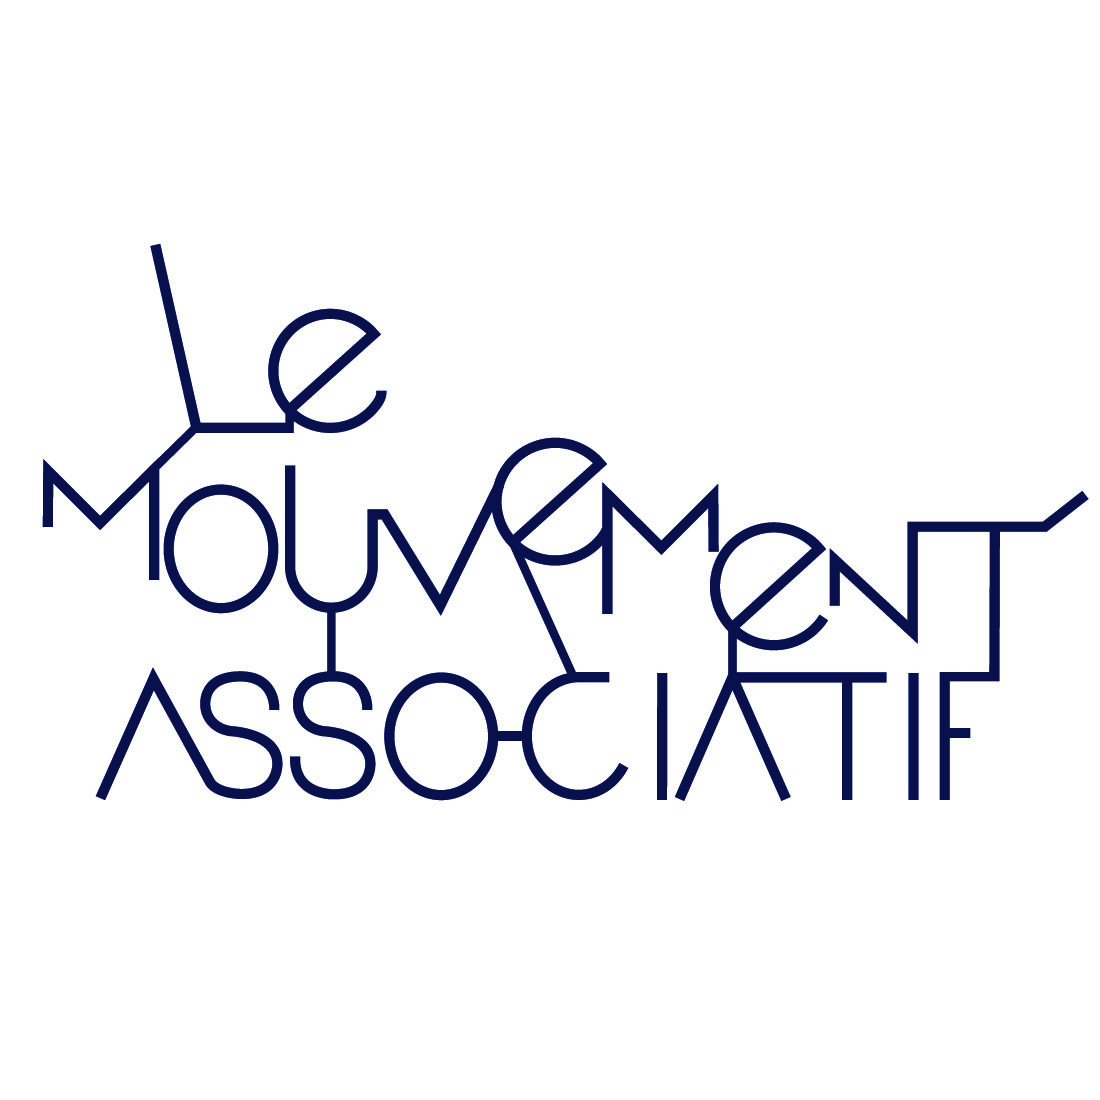 Statuts du Mouvement associatif